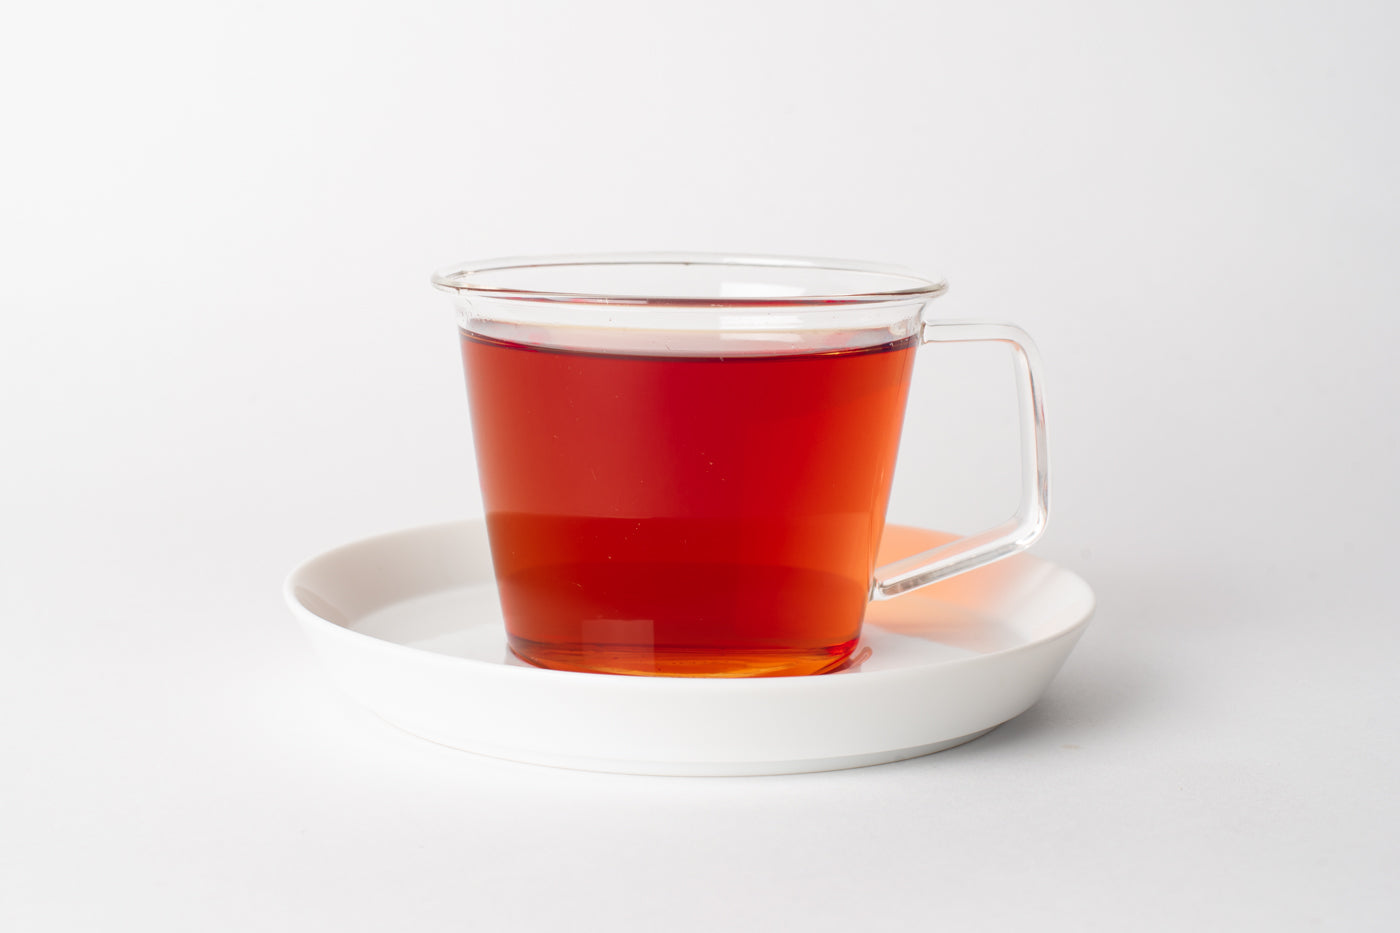 Black Tea Amber Red Colour